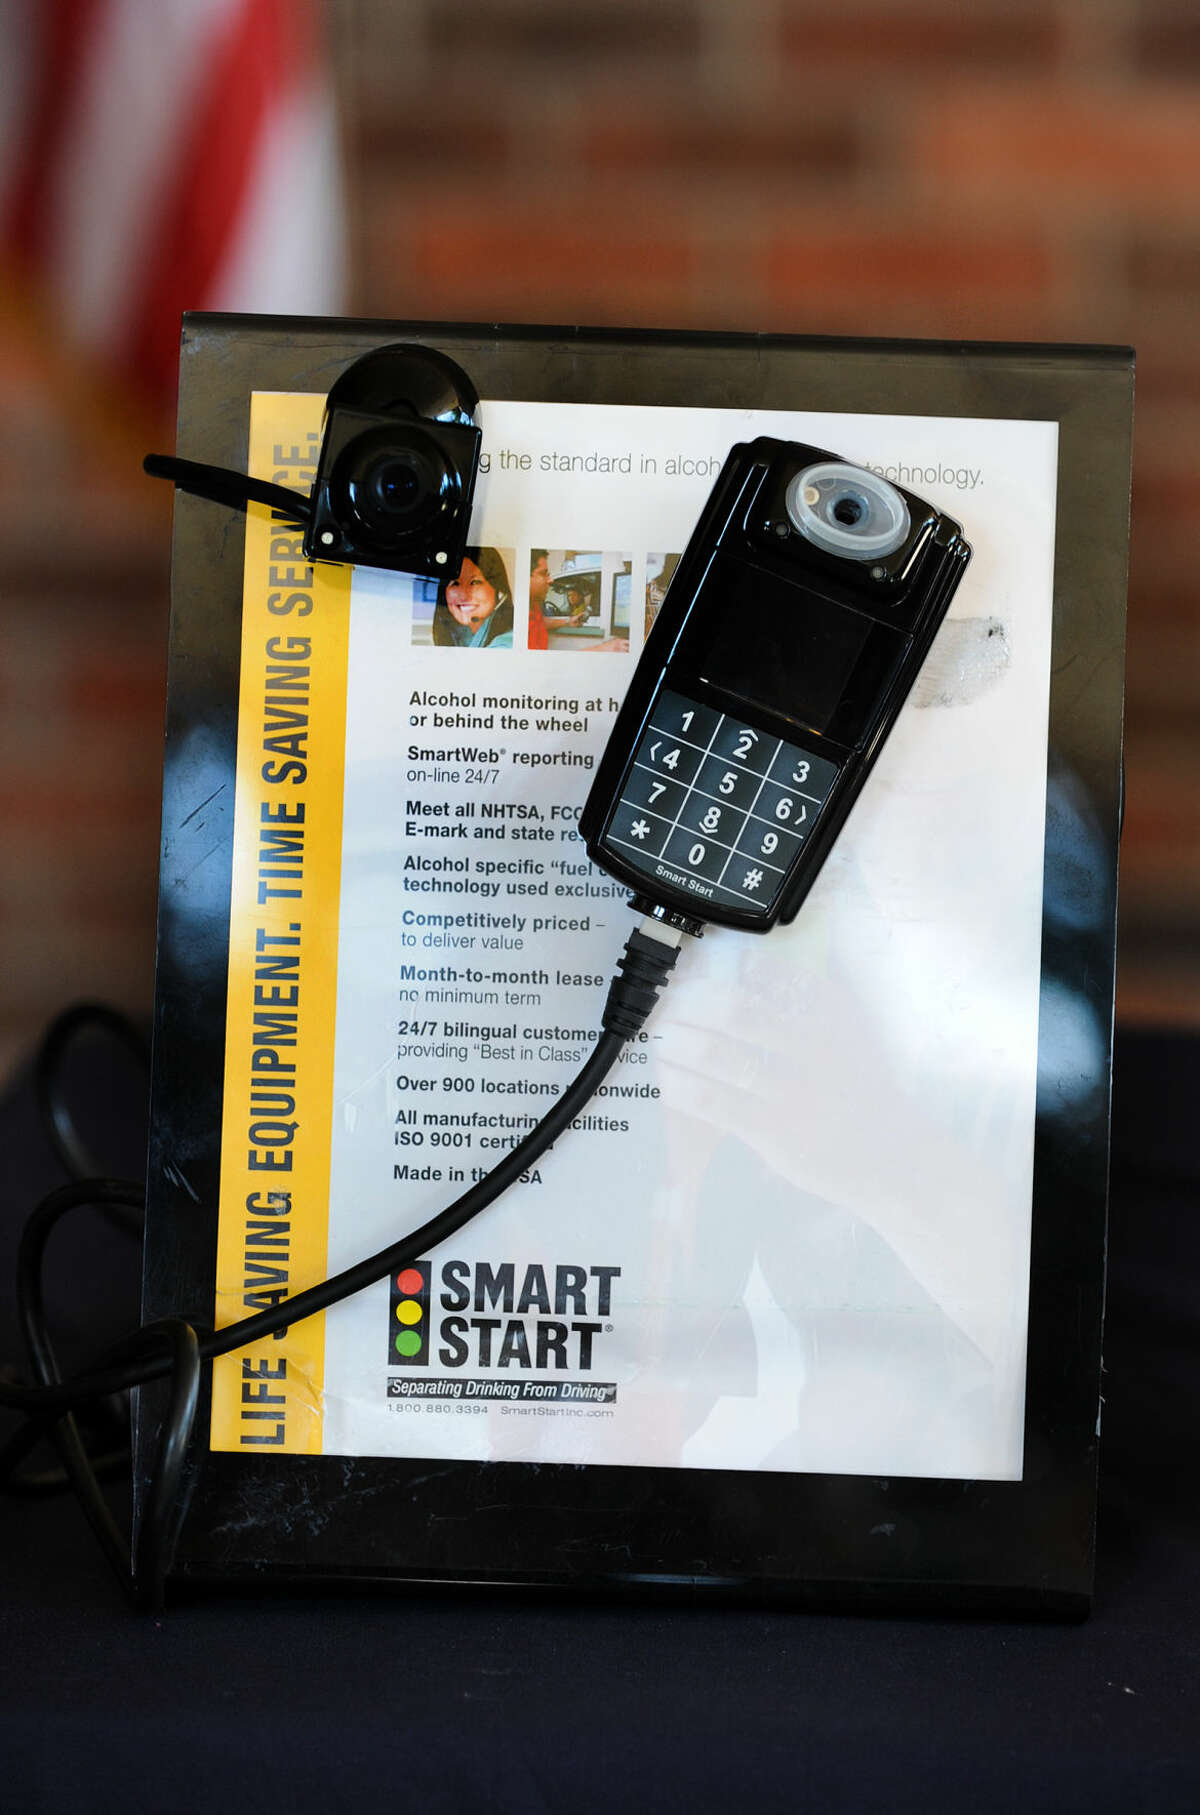 An Ignition Interlock Device that was on display at the ceremony to commemorate the new state law strengthening the state's ignition interlock requirements for driving under the influence (DUI) held at the Fairfield Police Department in Fairfield, Conn. on Monday, Aug. 11, 2014.